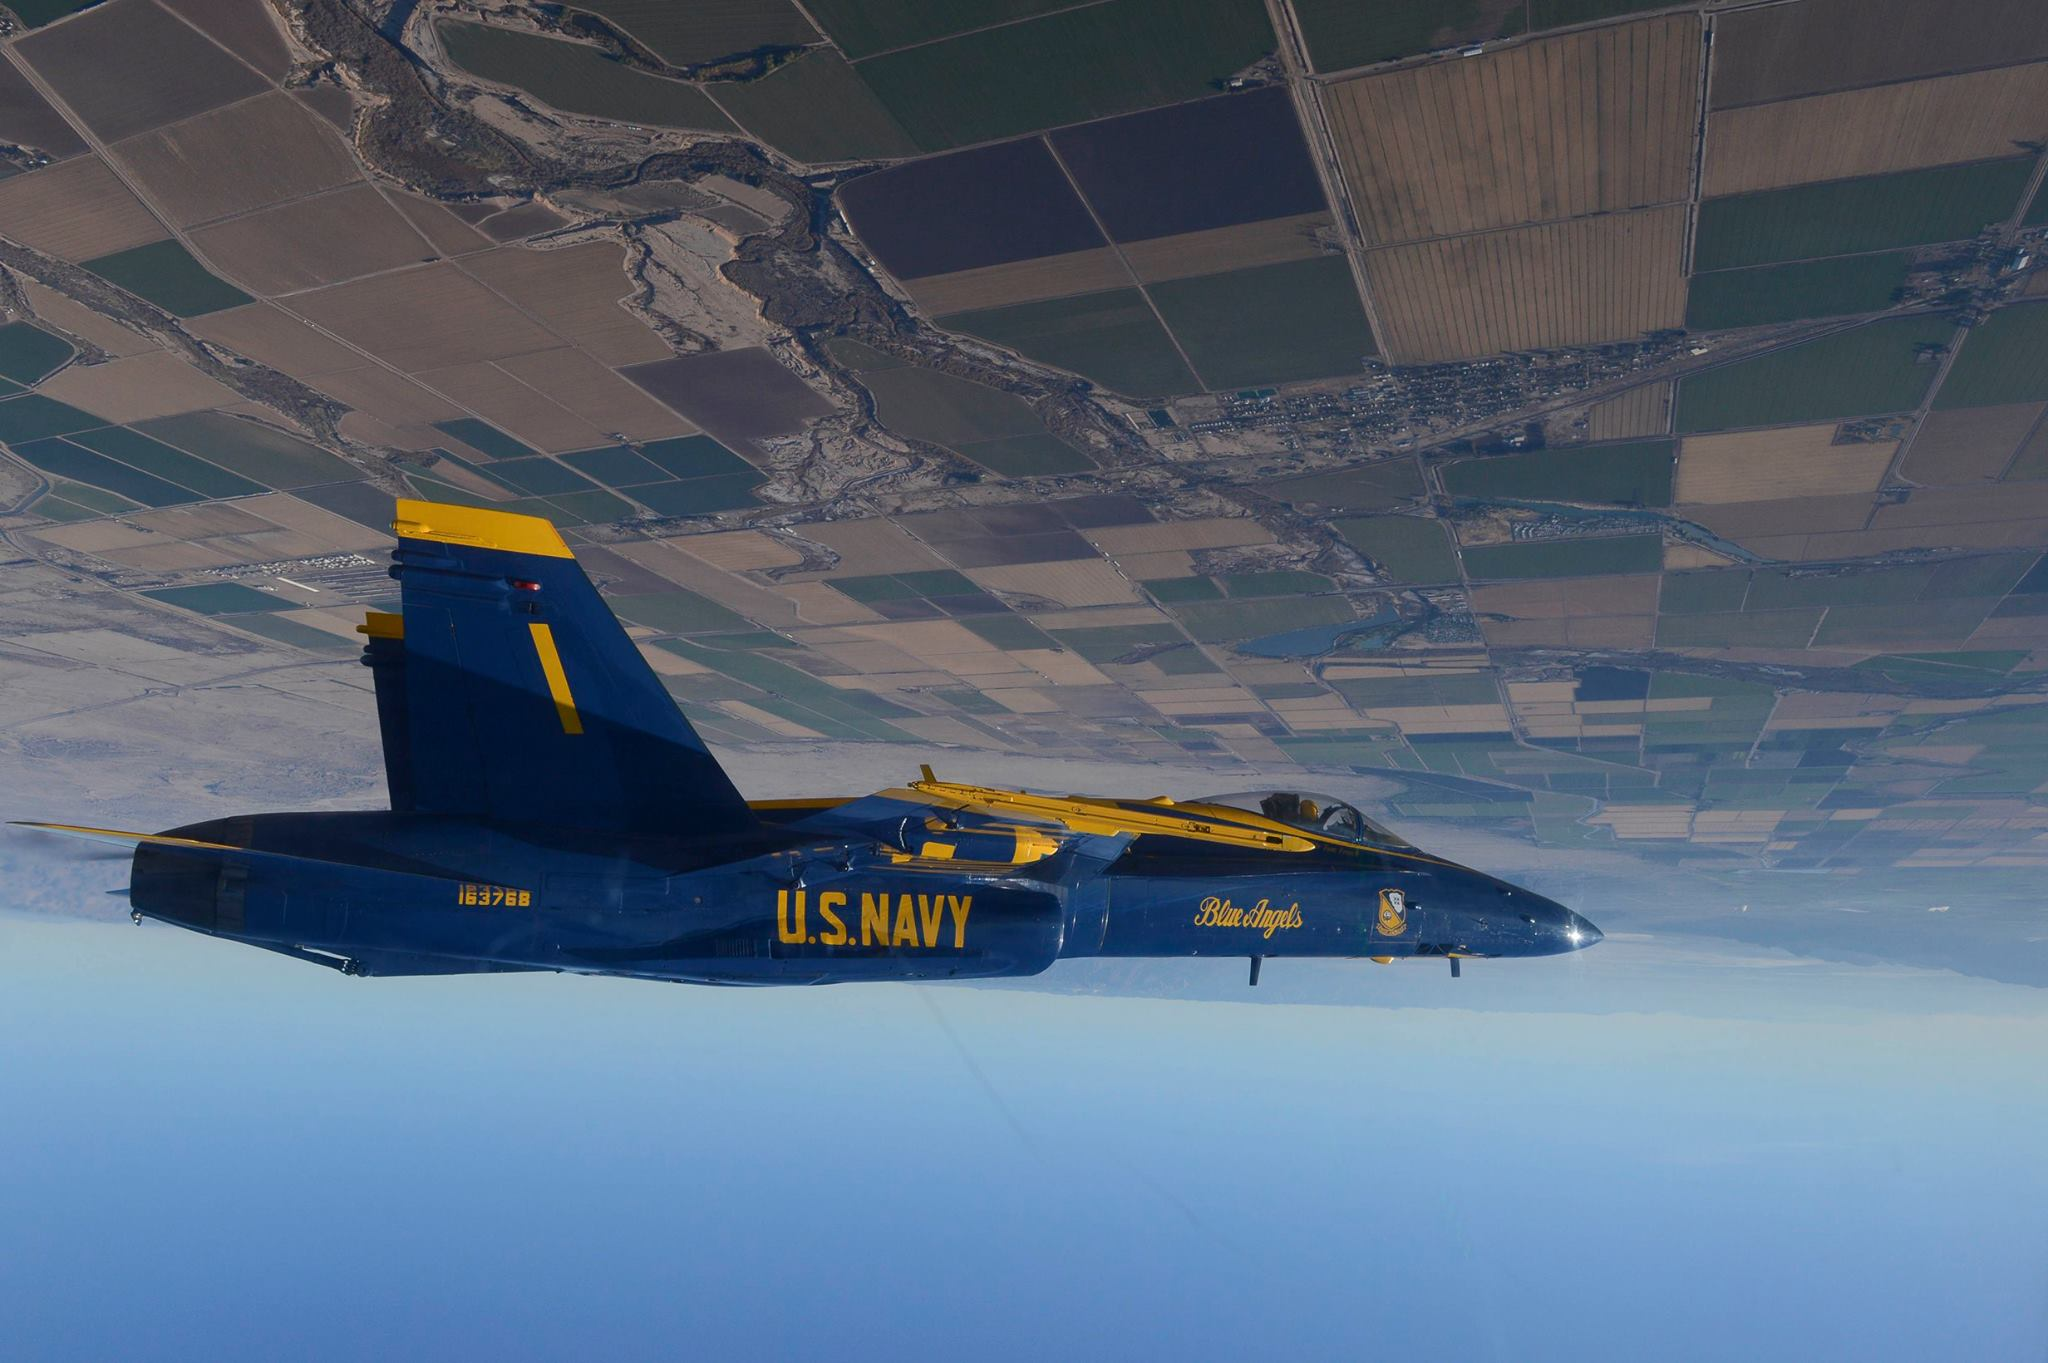 How can I Fly with the Blue Angels?